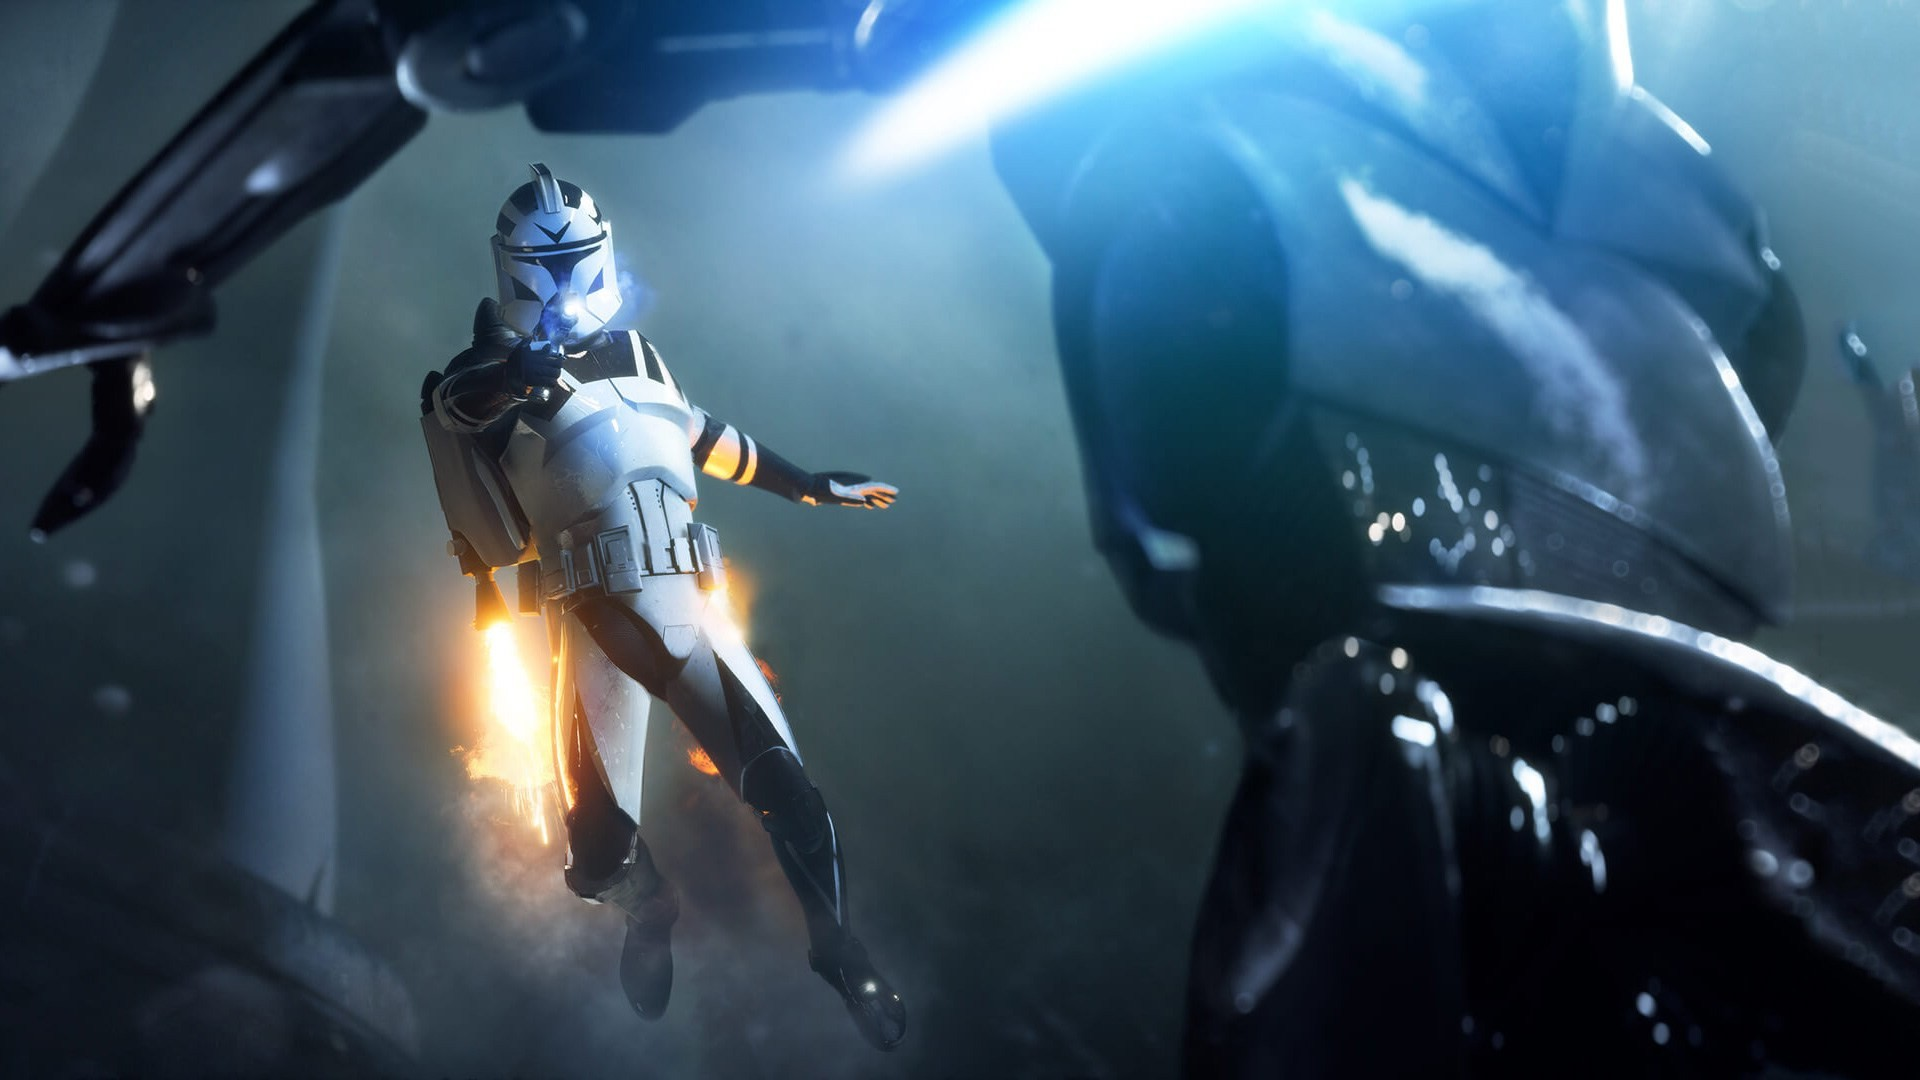 Select the image above to view the wallpaper full screen. 2. Press the  PlayStation 4 screen capture button on the controller. Star Wars Battlefront  2